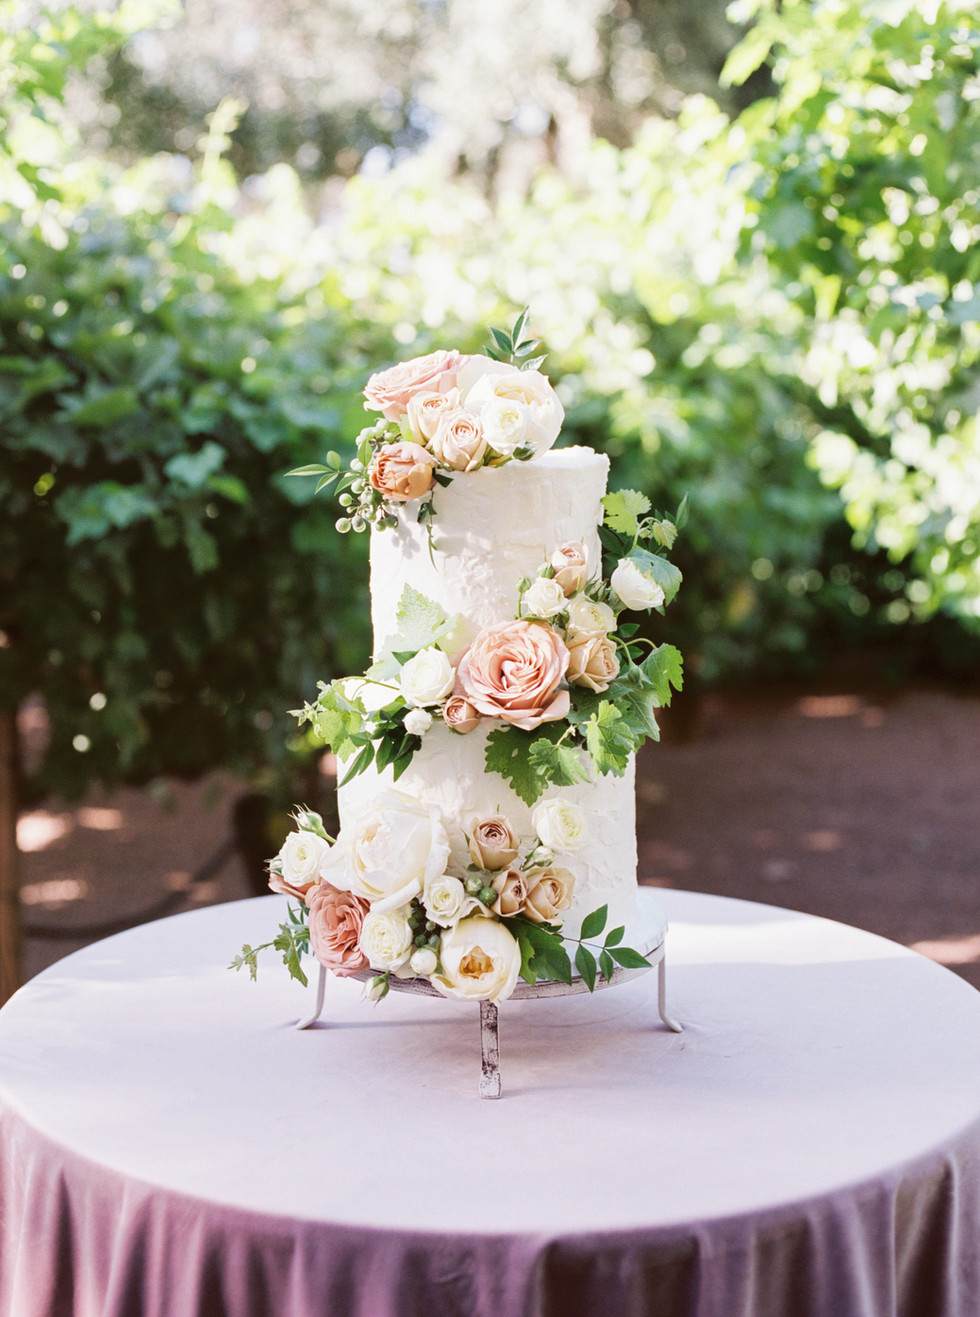 Garden foliage and blooms for wedding cake. Photo: Lianna Marie